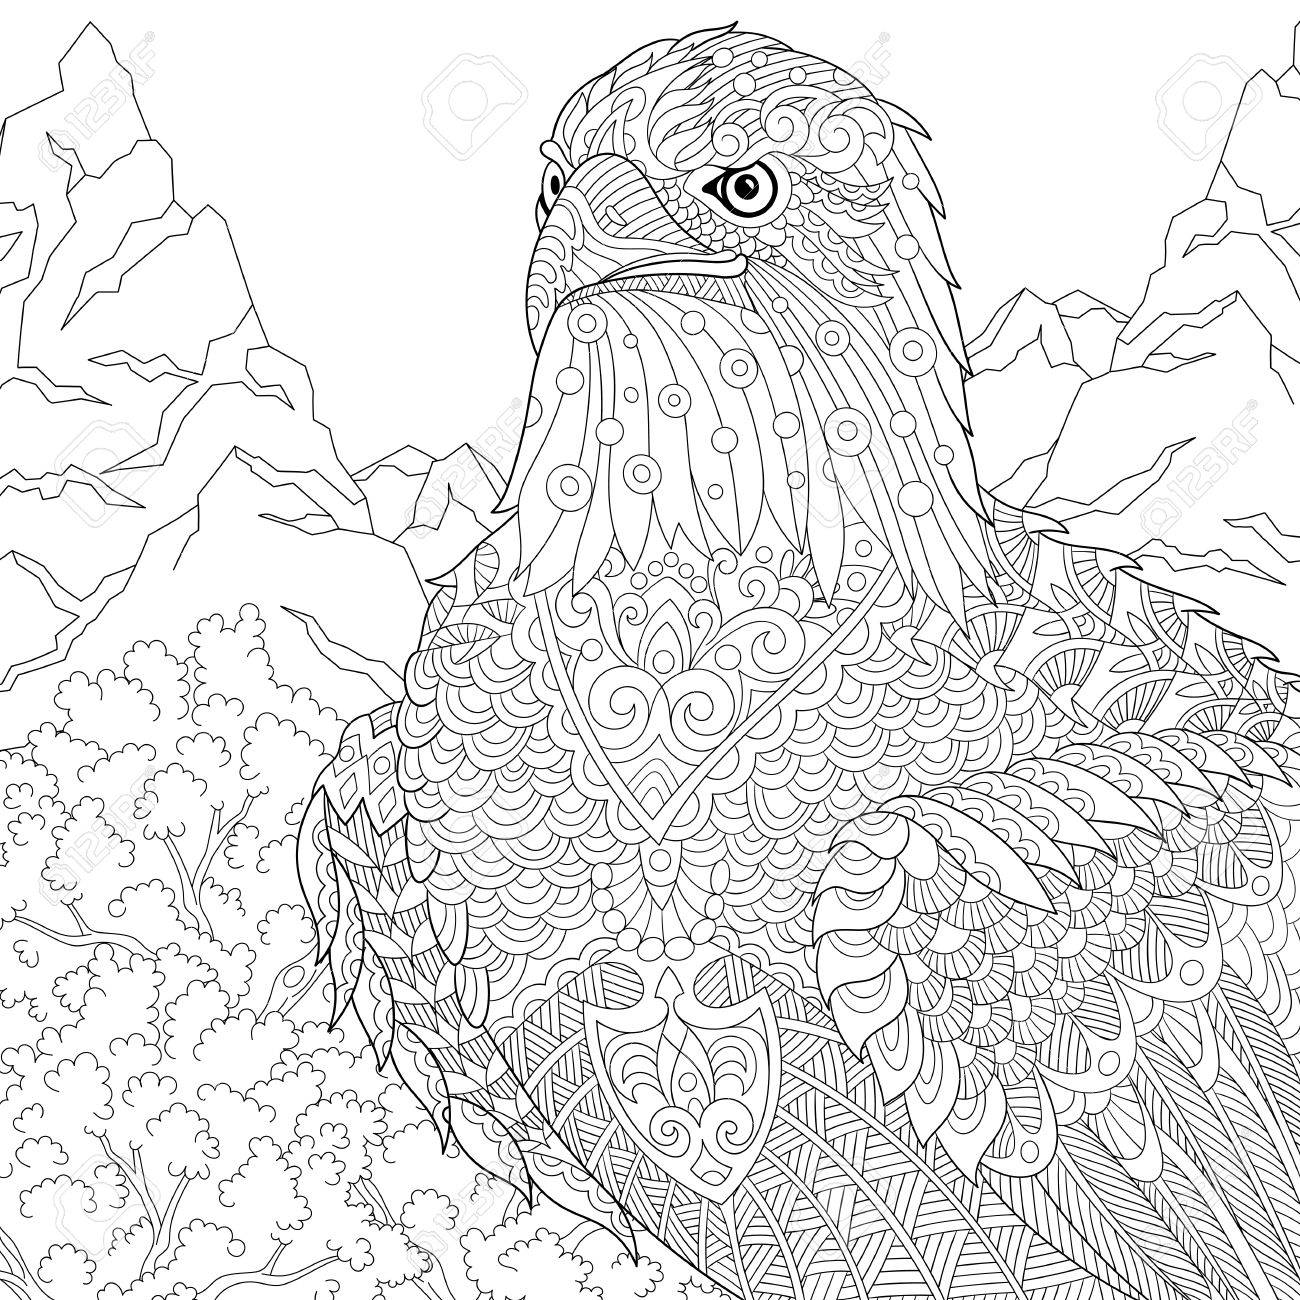 Coloring page of American bald eagle - national symbol of the..